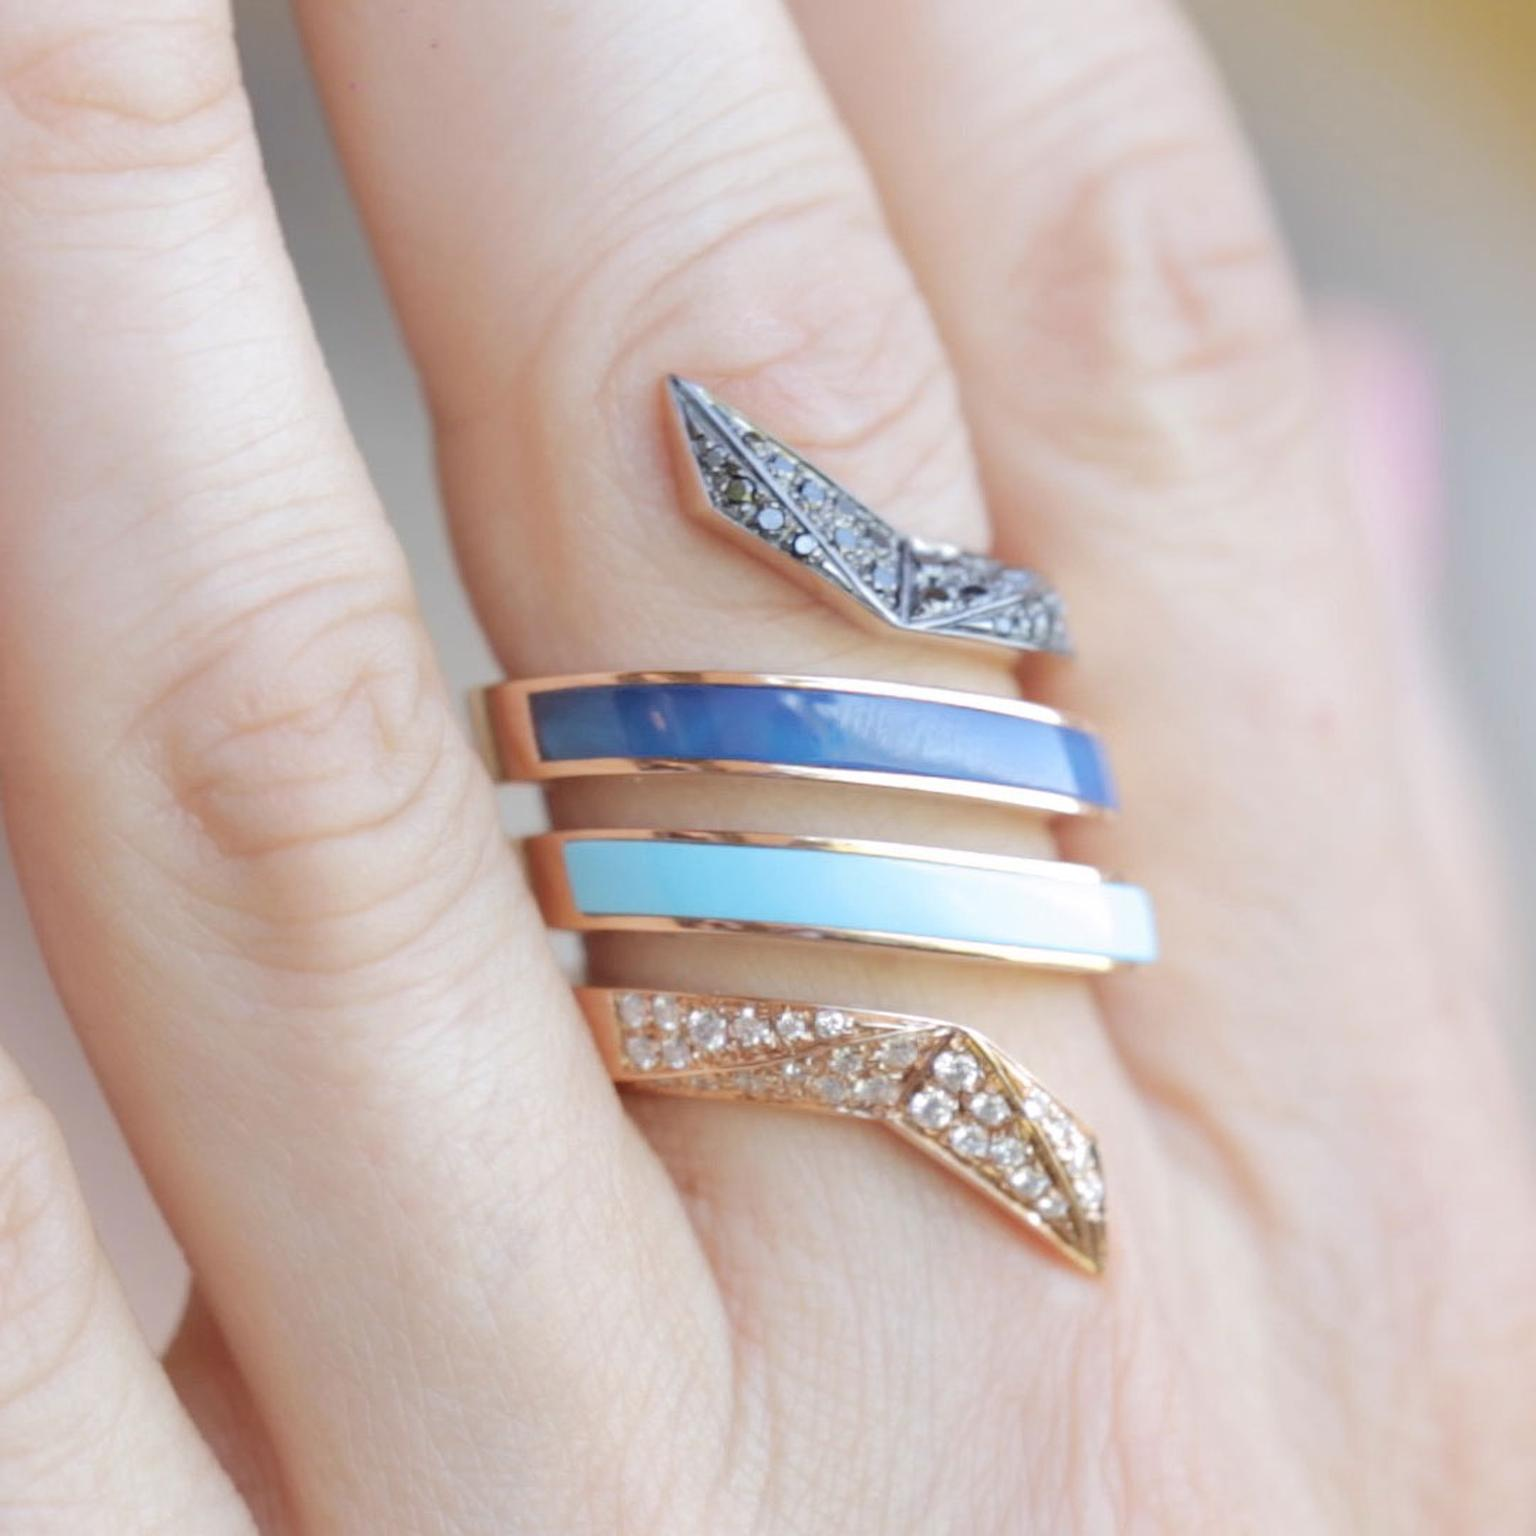 Octium Twist Collection ring close up